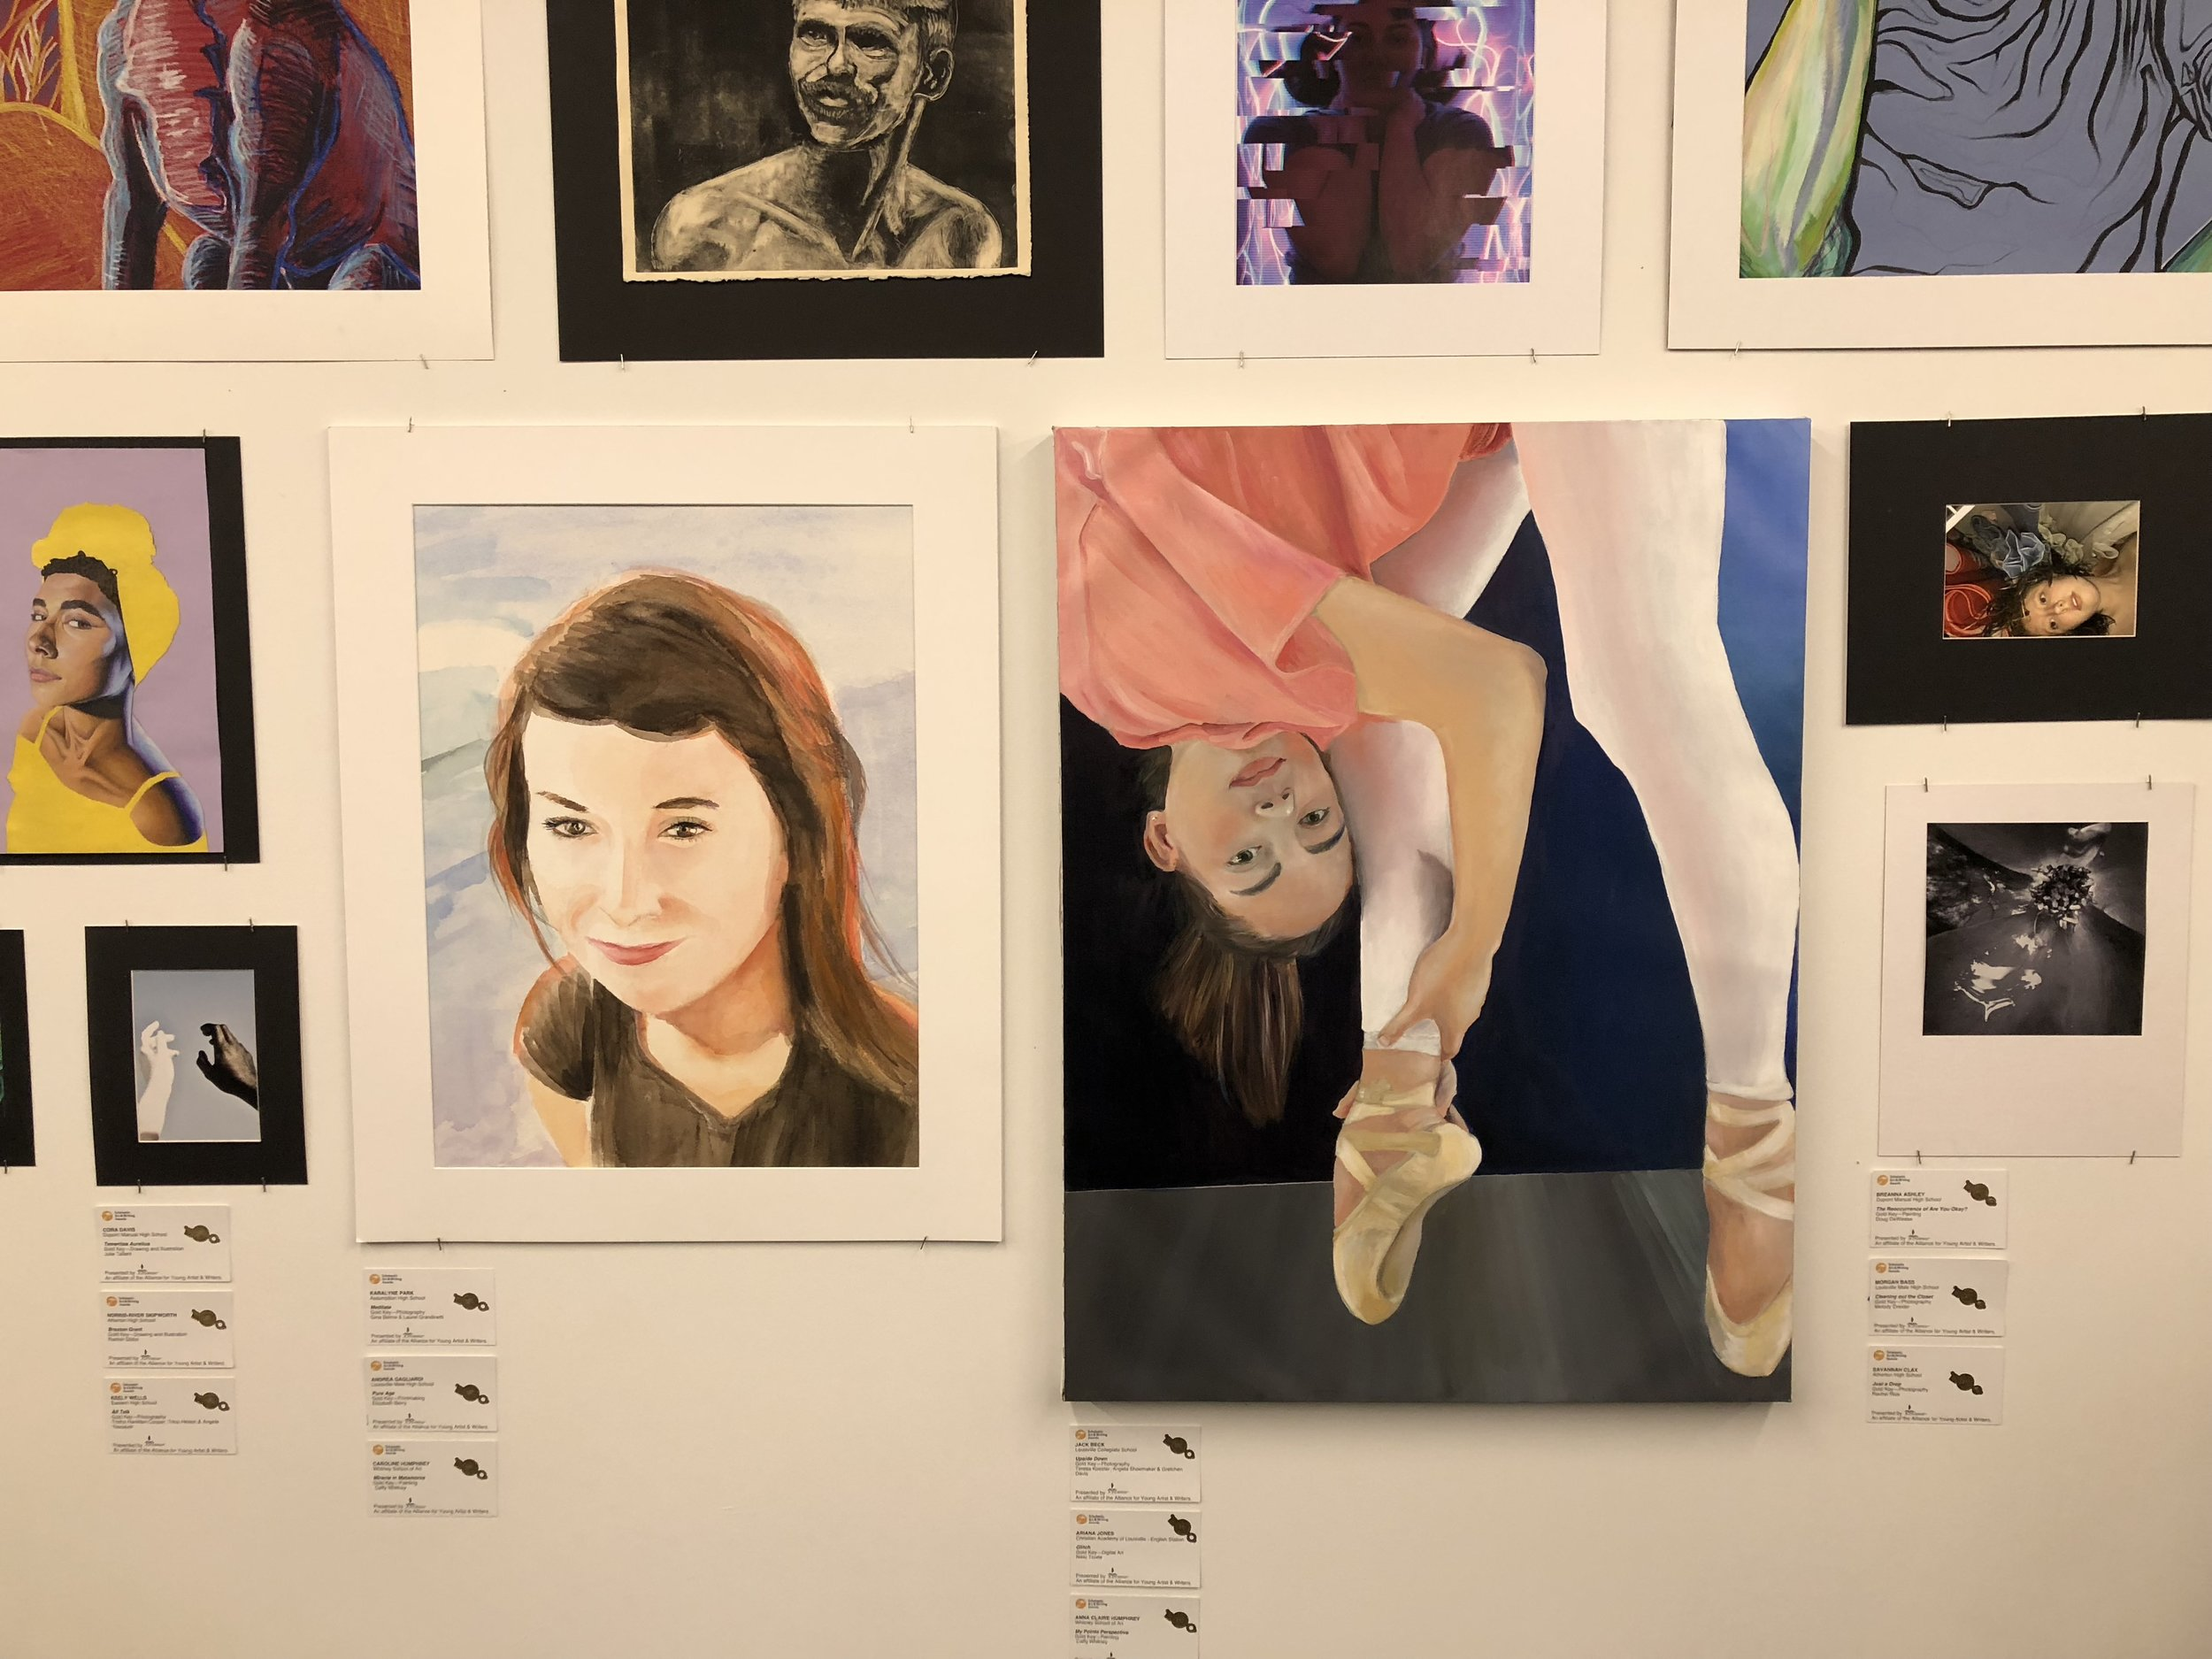 Displayed: Gold Key Louisville Regional awarded to two of my students. Watercolor: Portrait and Oil on Wood Panel: Self- Portrait